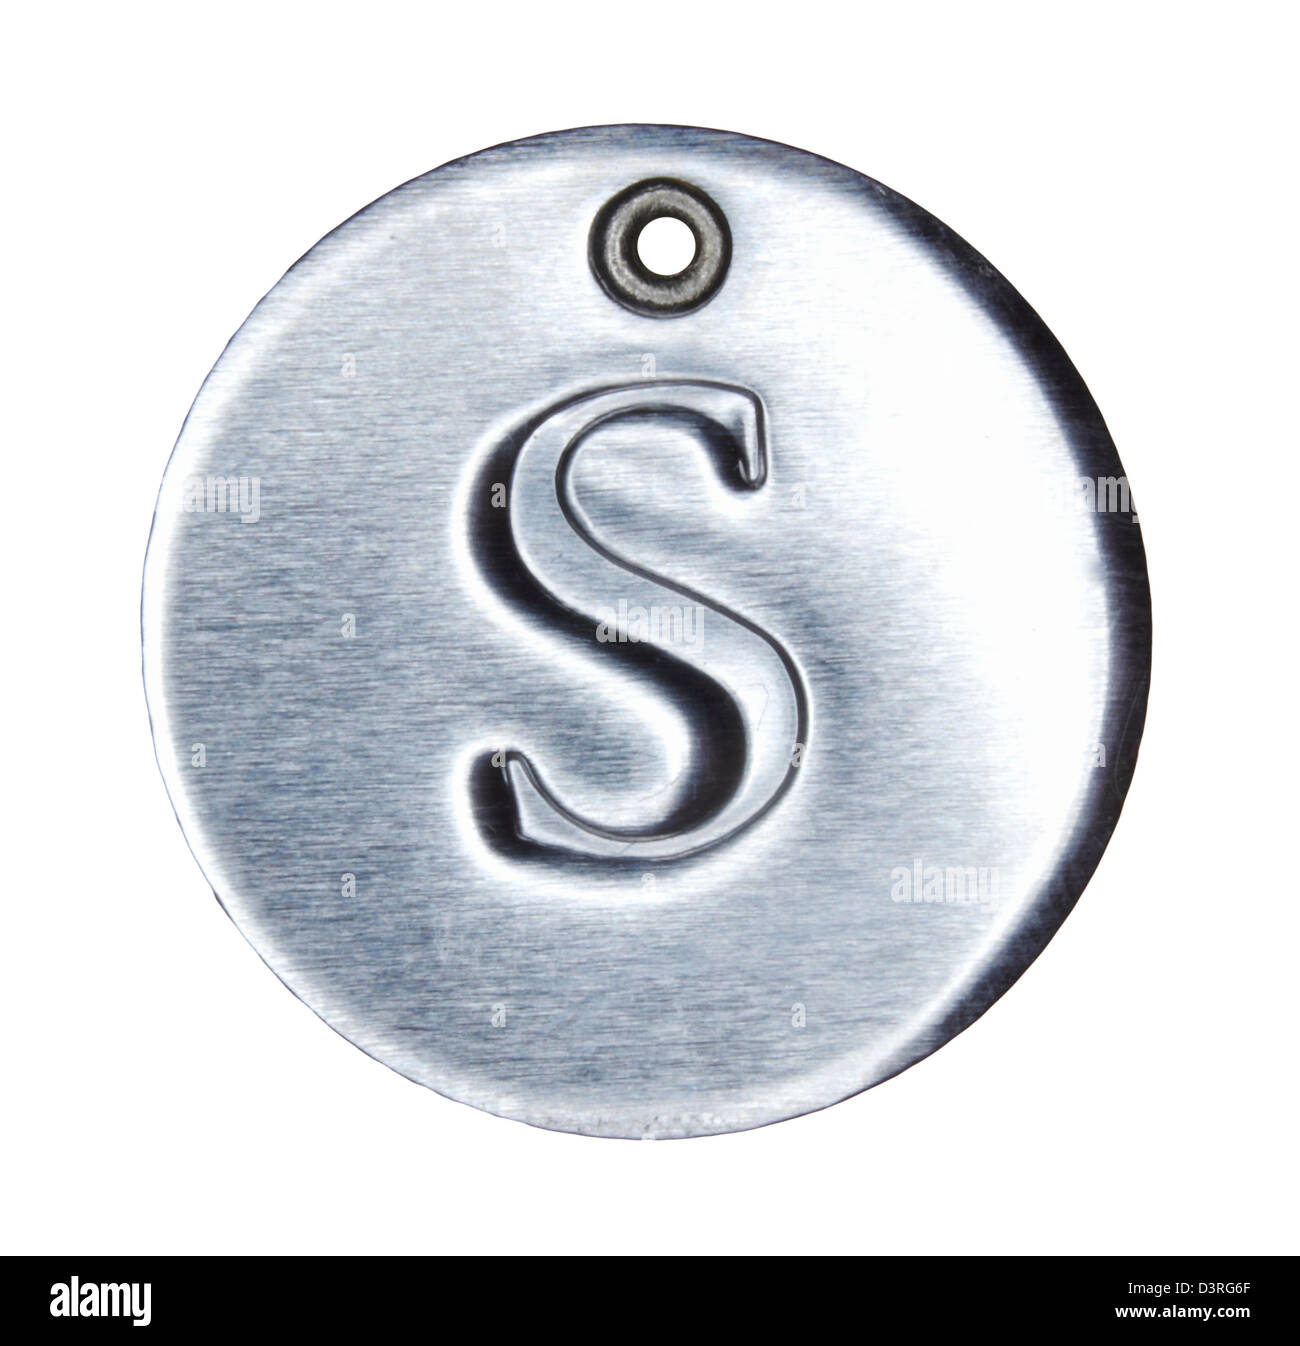 Brushed metal letter of the alphabet S - Stock Image